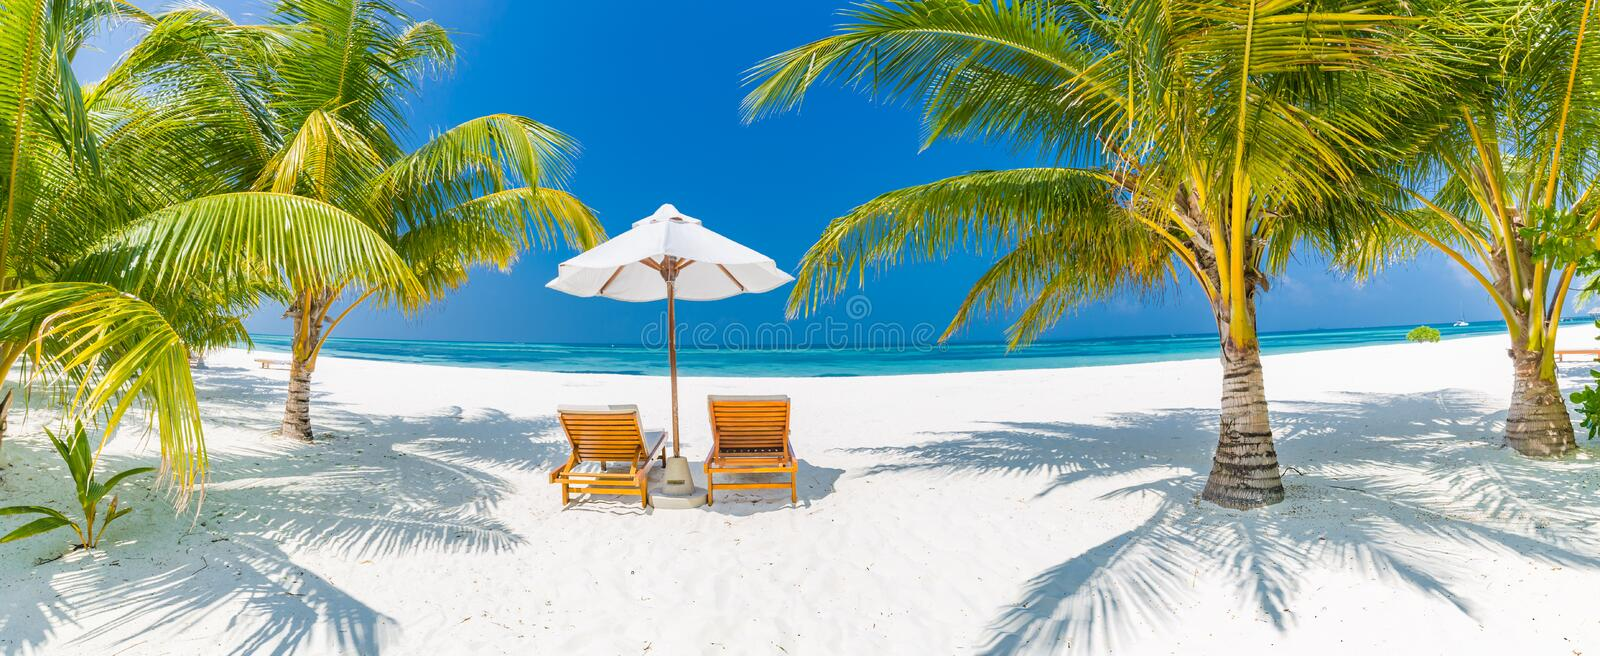 Summer travel destination background panorama. Tropical beach scene. Summer travel destination. Design of summer vacation holiday concept. Perfect tranquil beach stock photo